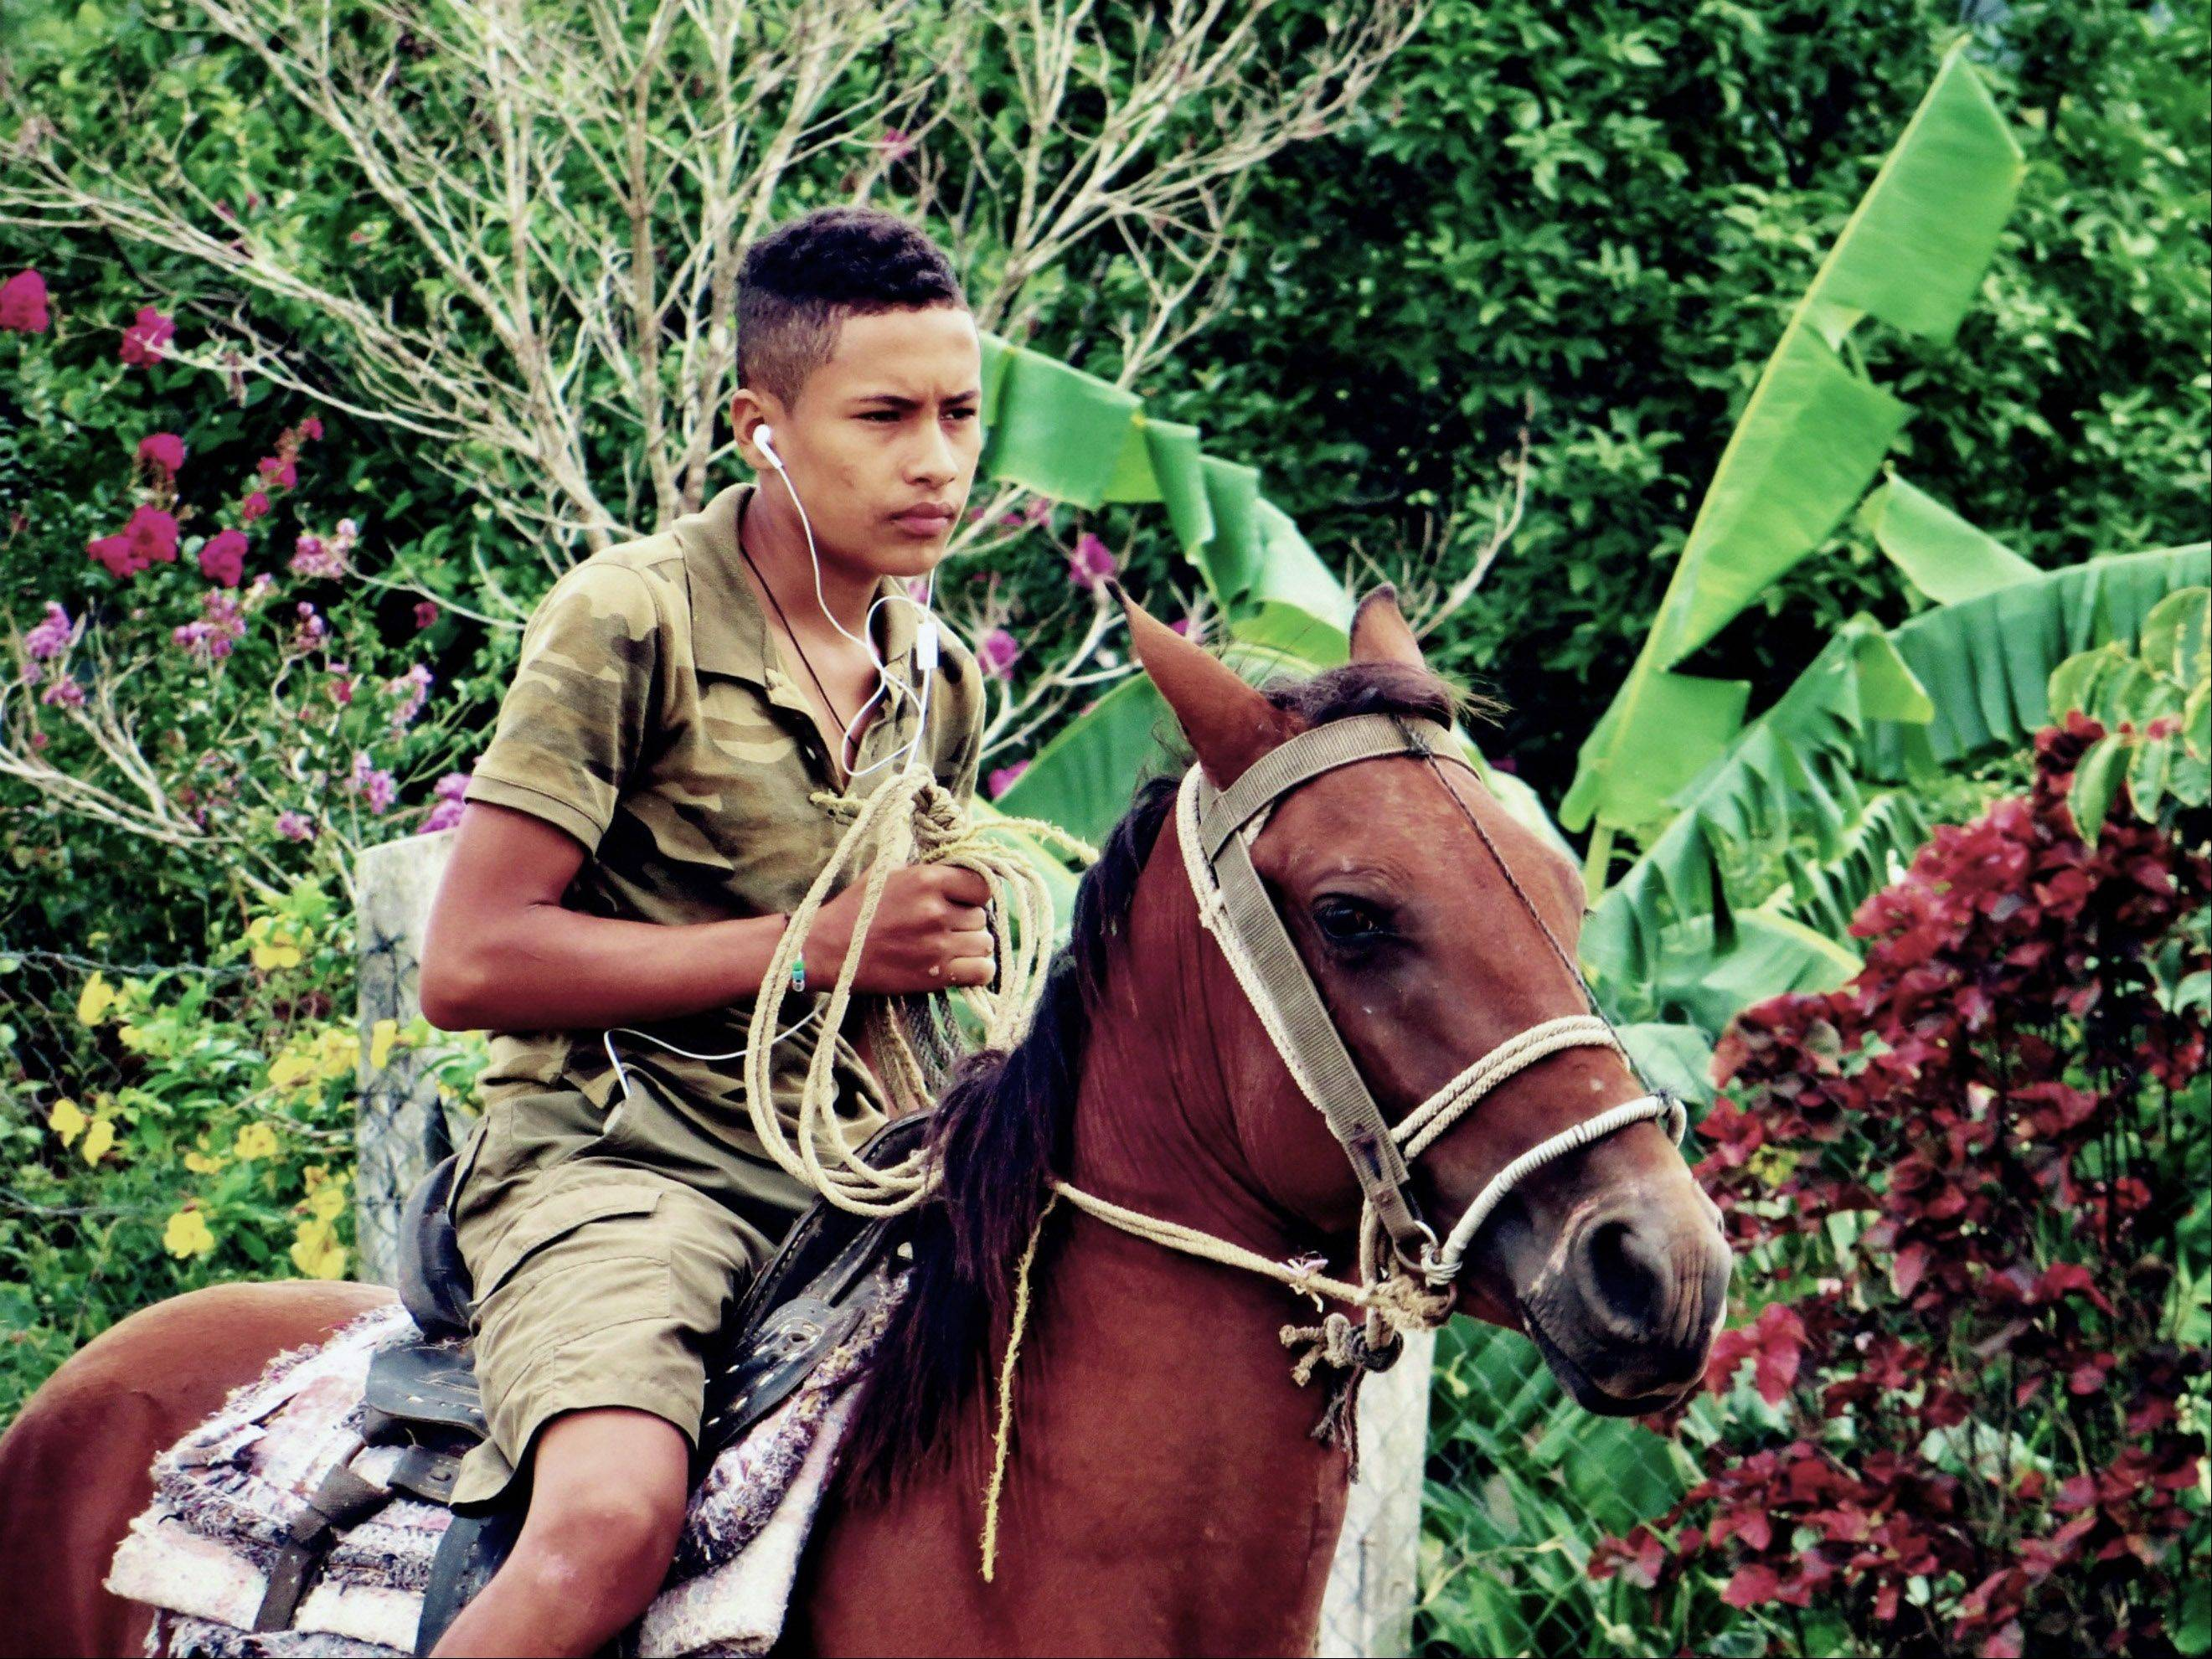 A Honduran rancher's son rounds up horses in a primitive fashion while listening to his iPod in San Esteban, Honduras on August 3.